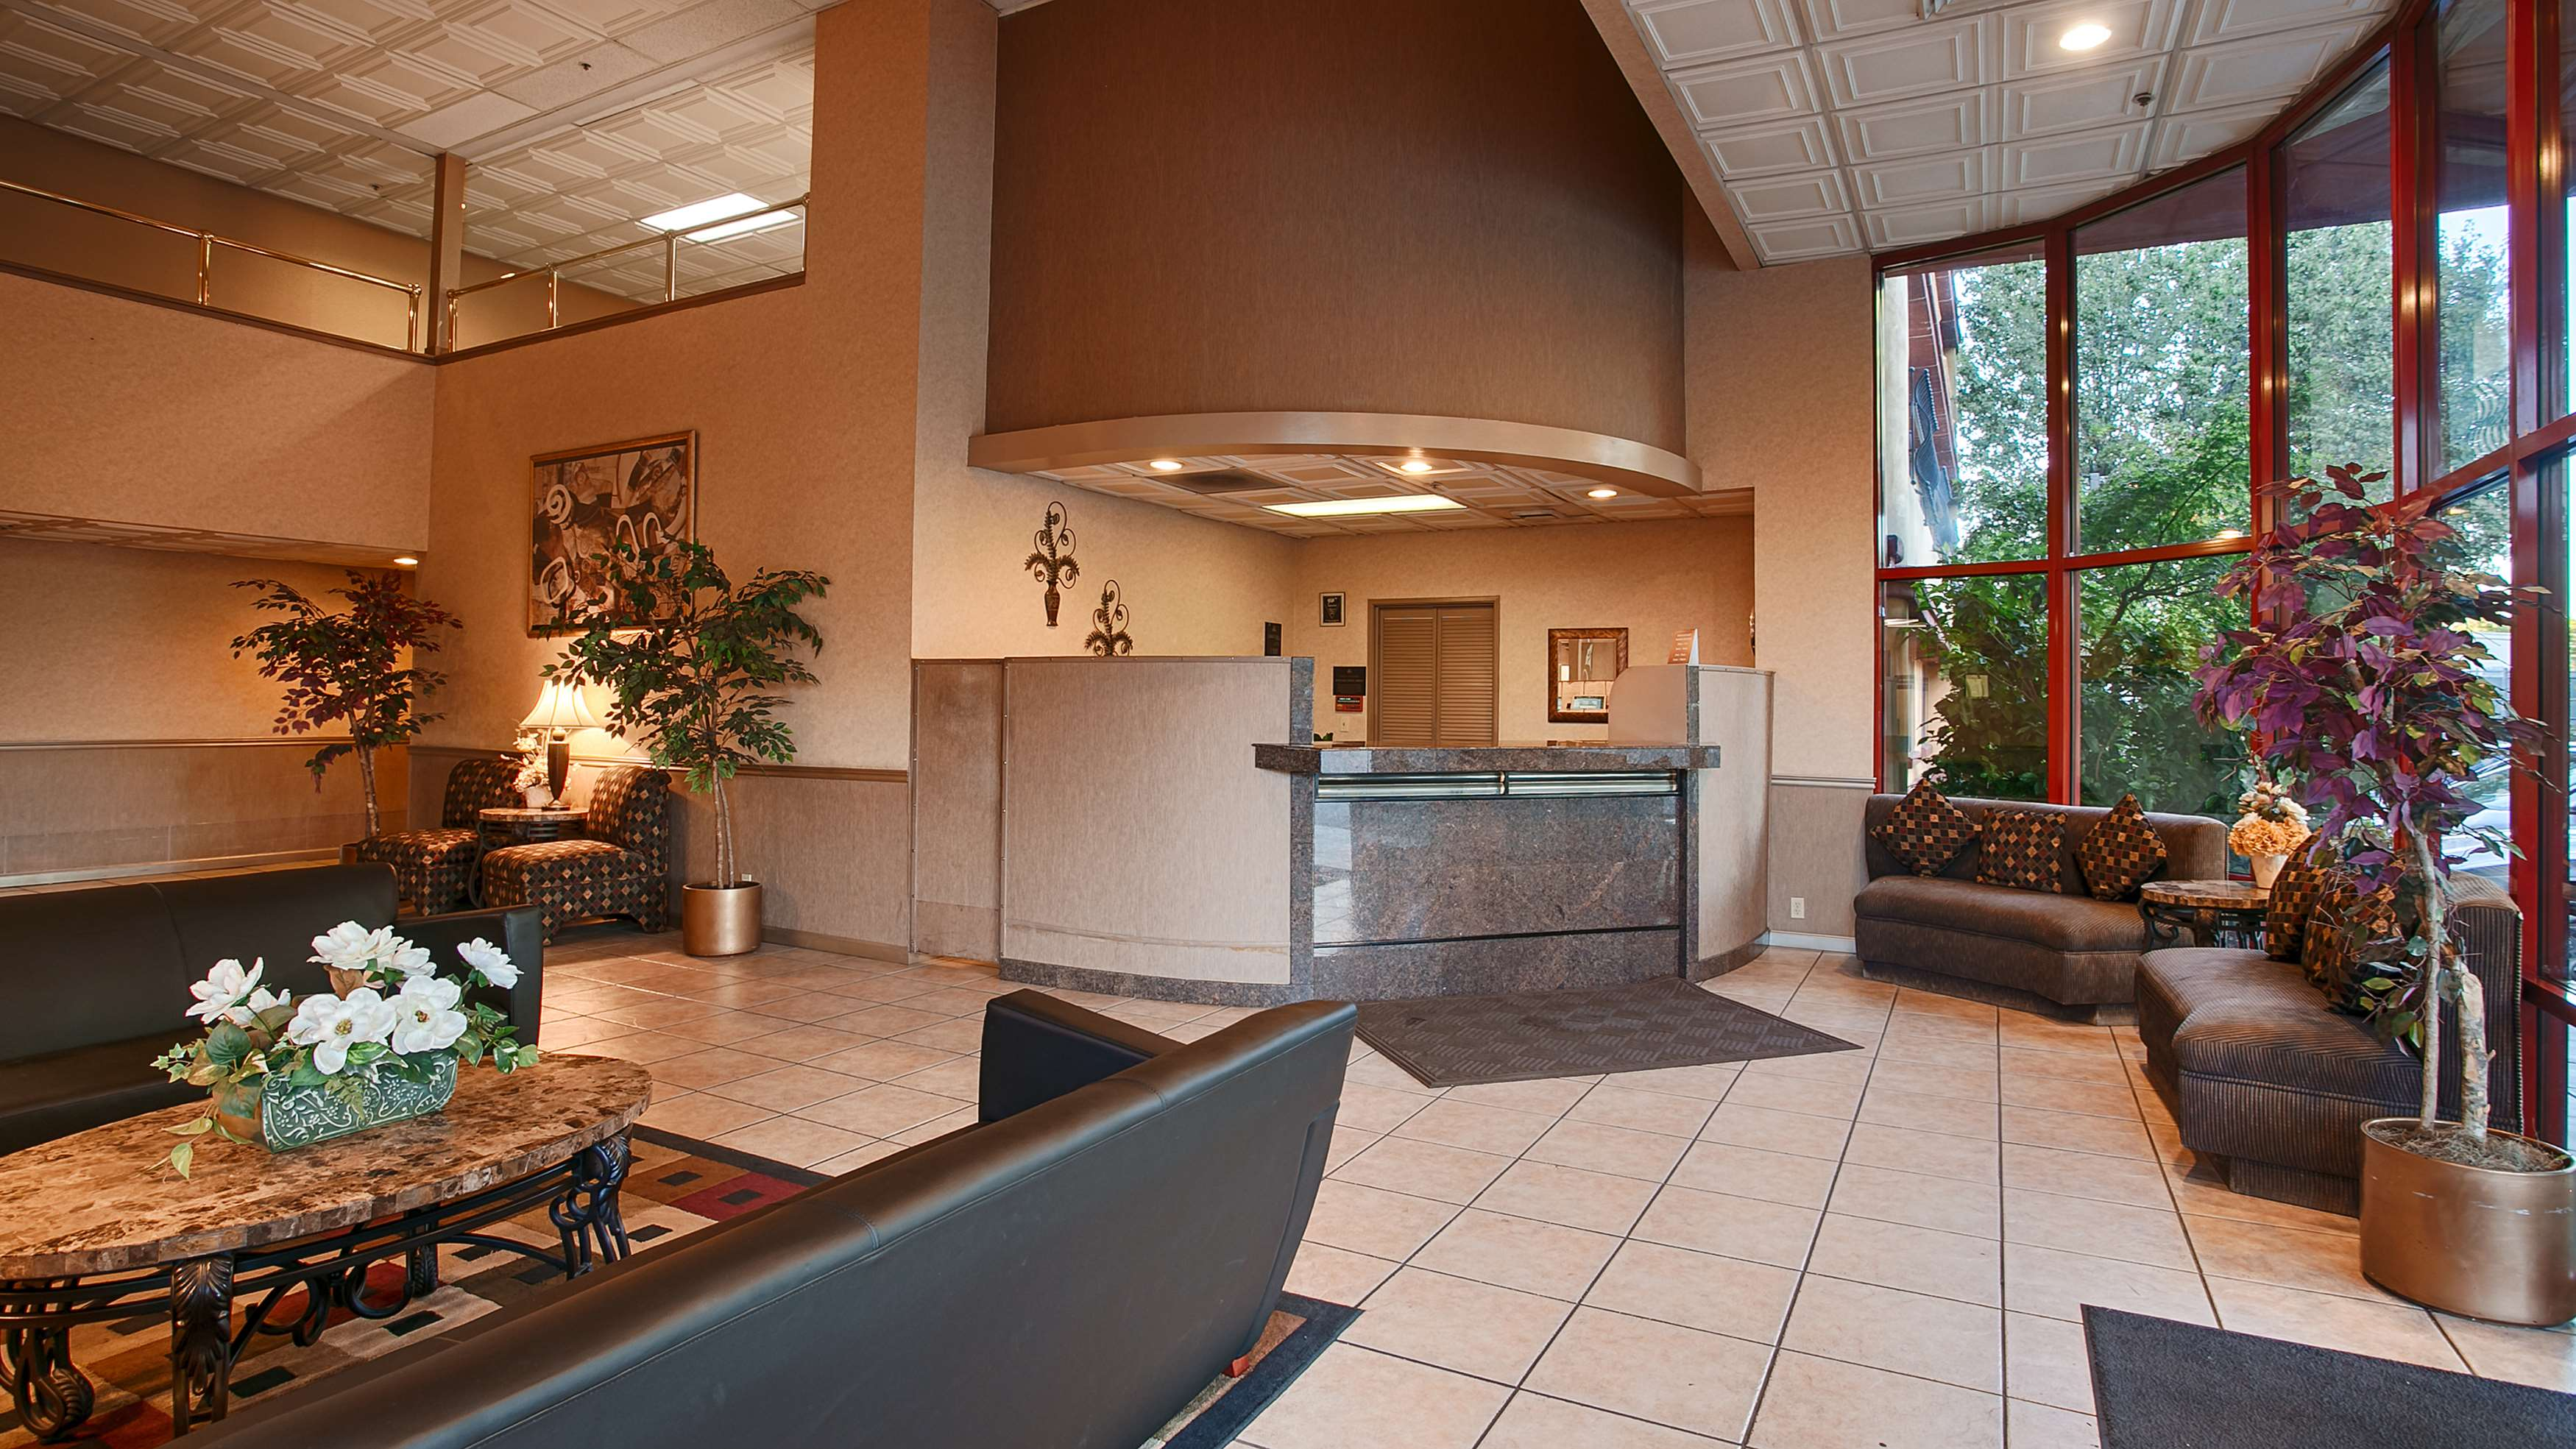 Chico Ca Hotels And Motels